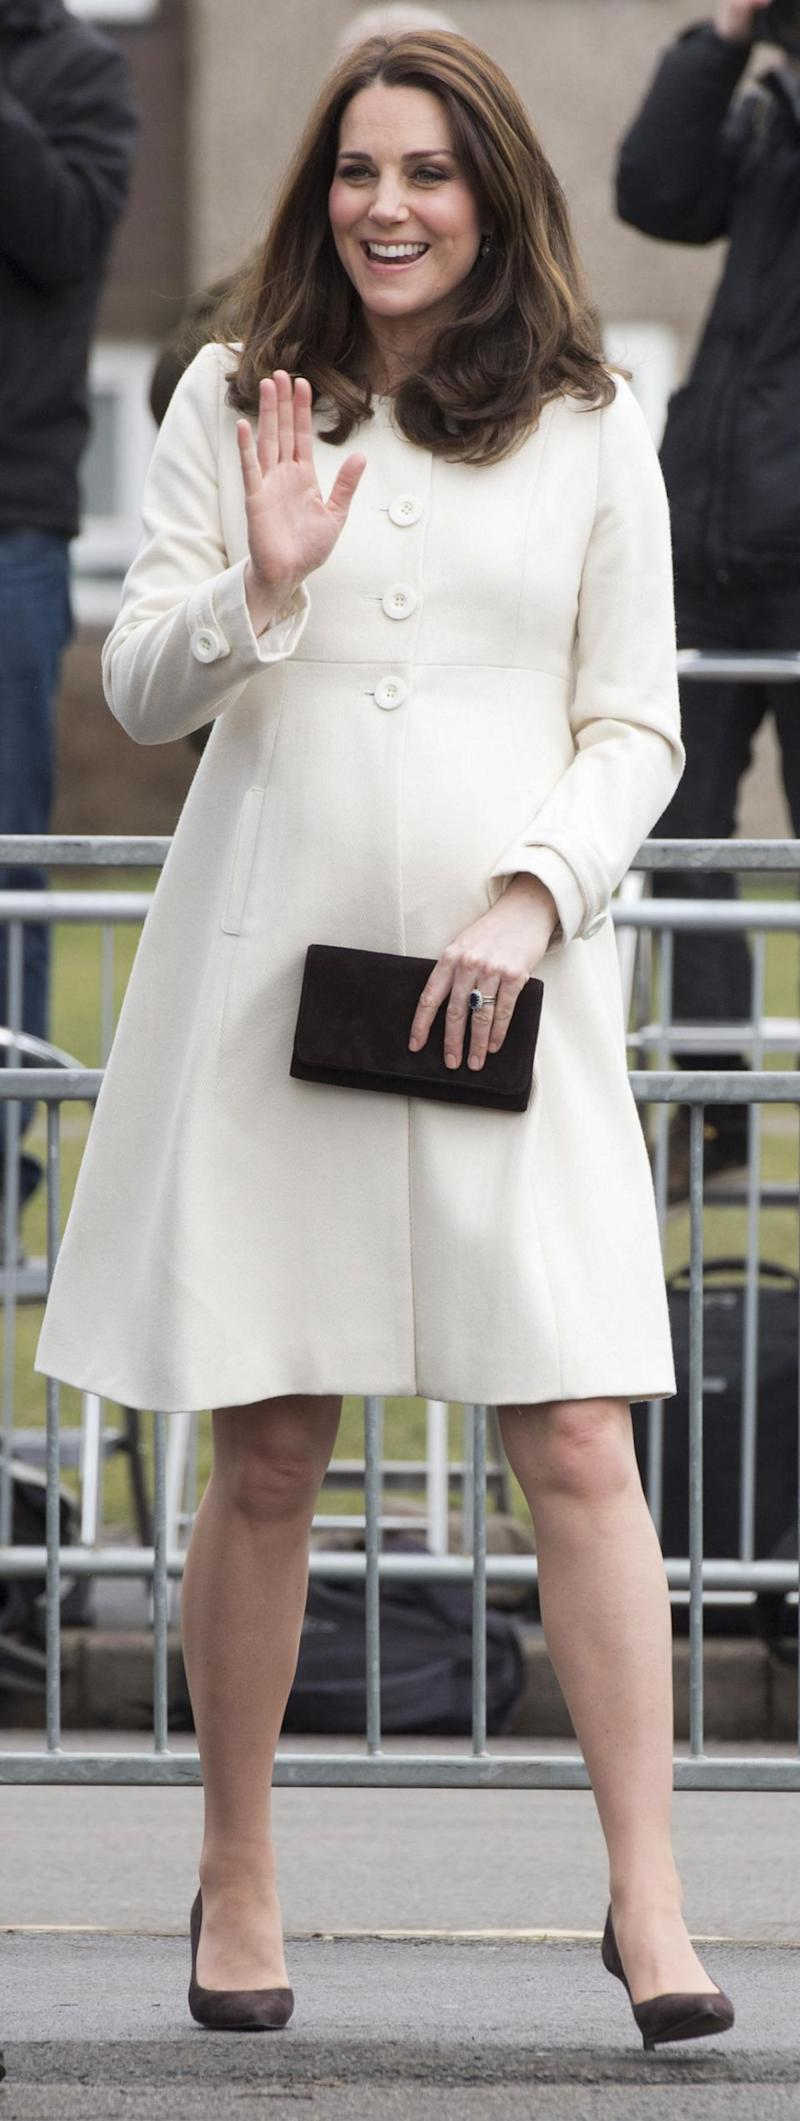 Kate Middleton is known for her thrift ways. Photo: Getty Images